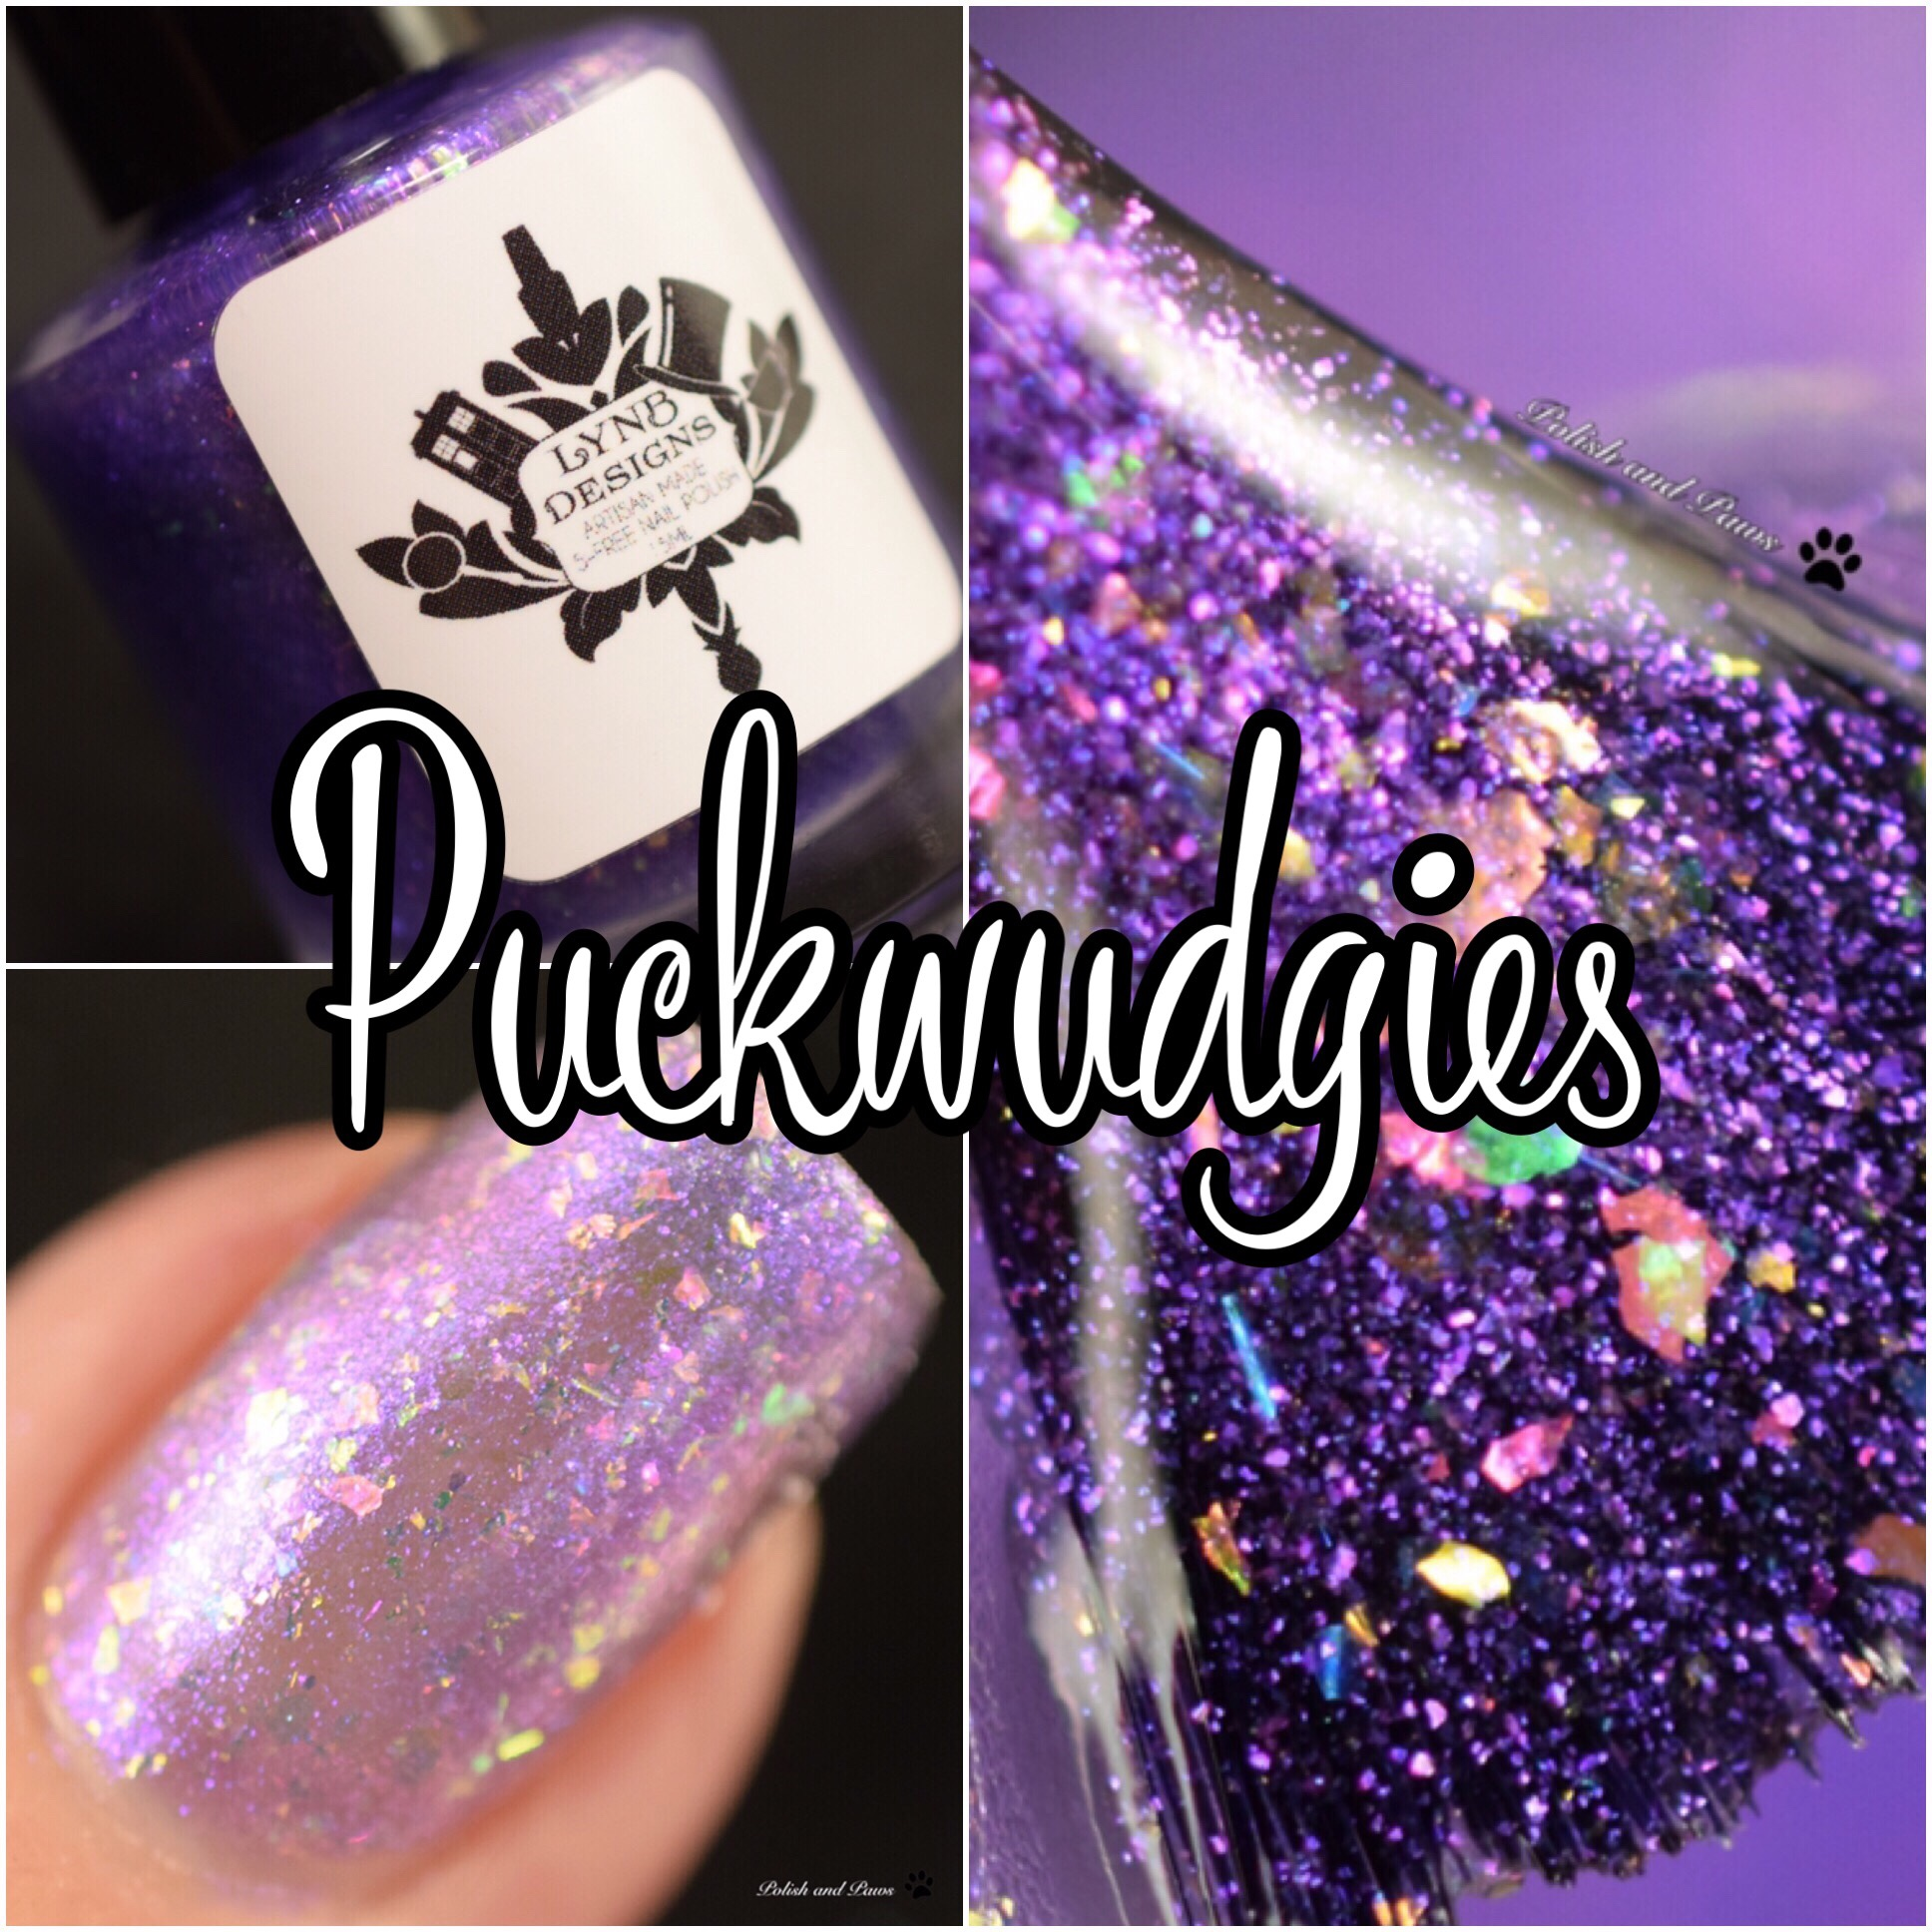 LynB Designs Puckwudgies